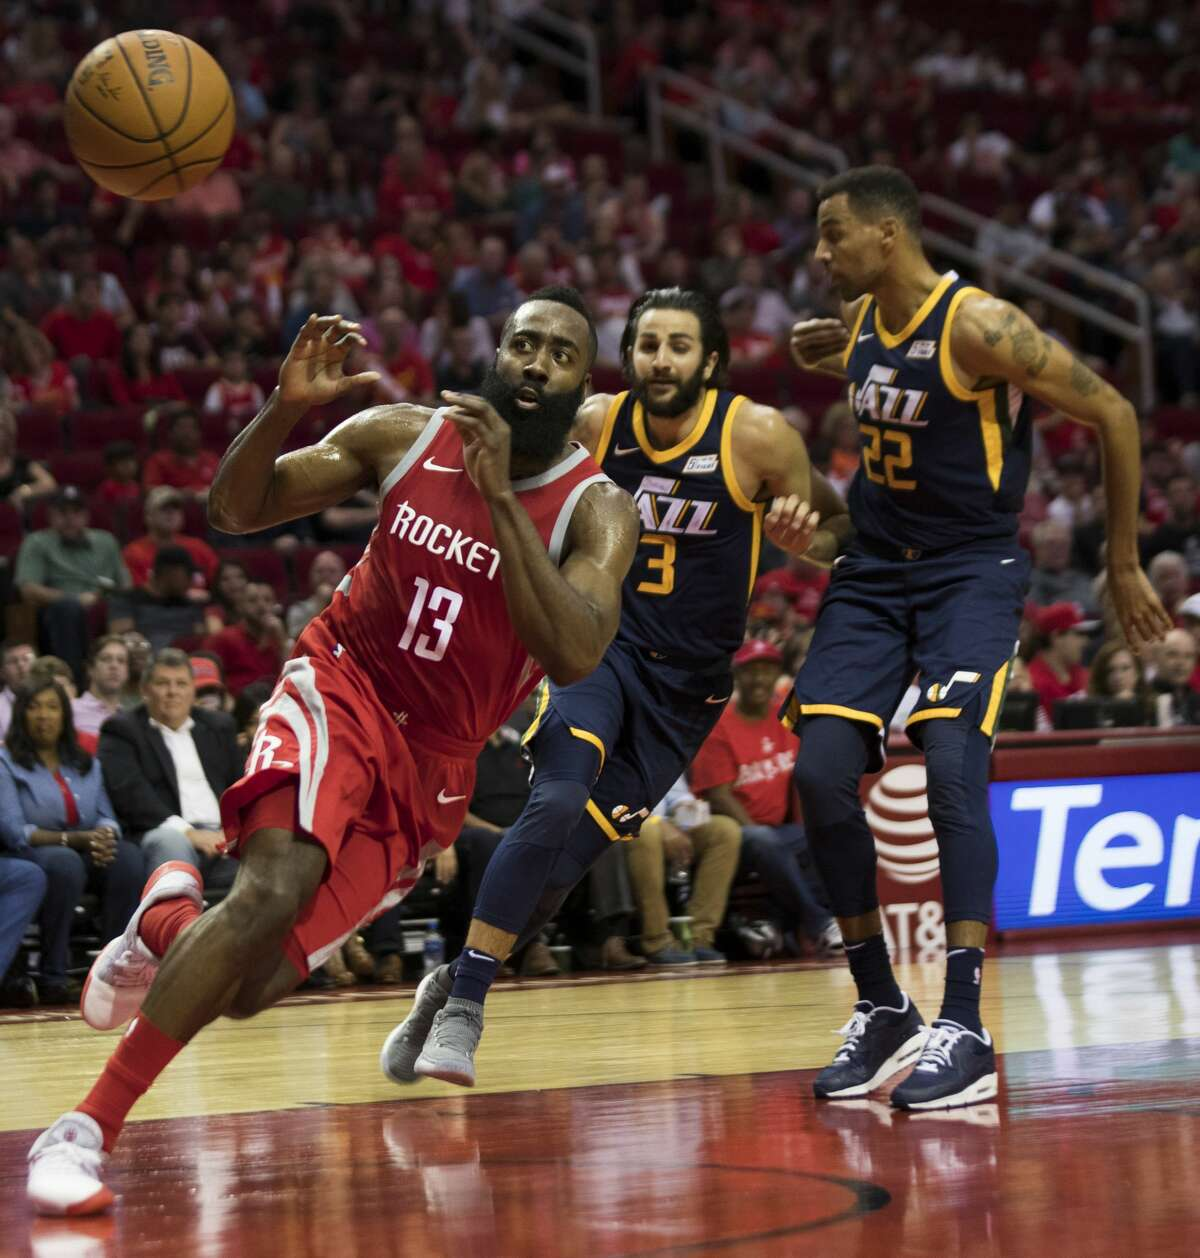 Houston Rockets guard James Harden (13) prepares to catch a pass under the pressure of Utah Jazz guard Ricky Rubio (3) and Utah Jazz forward Thabo Sefolosha (22) on Sunday, Nov. 5, 2017, at the Toyota Center in Houston. ( Marie D. De Jesus / Houston Chronicle )